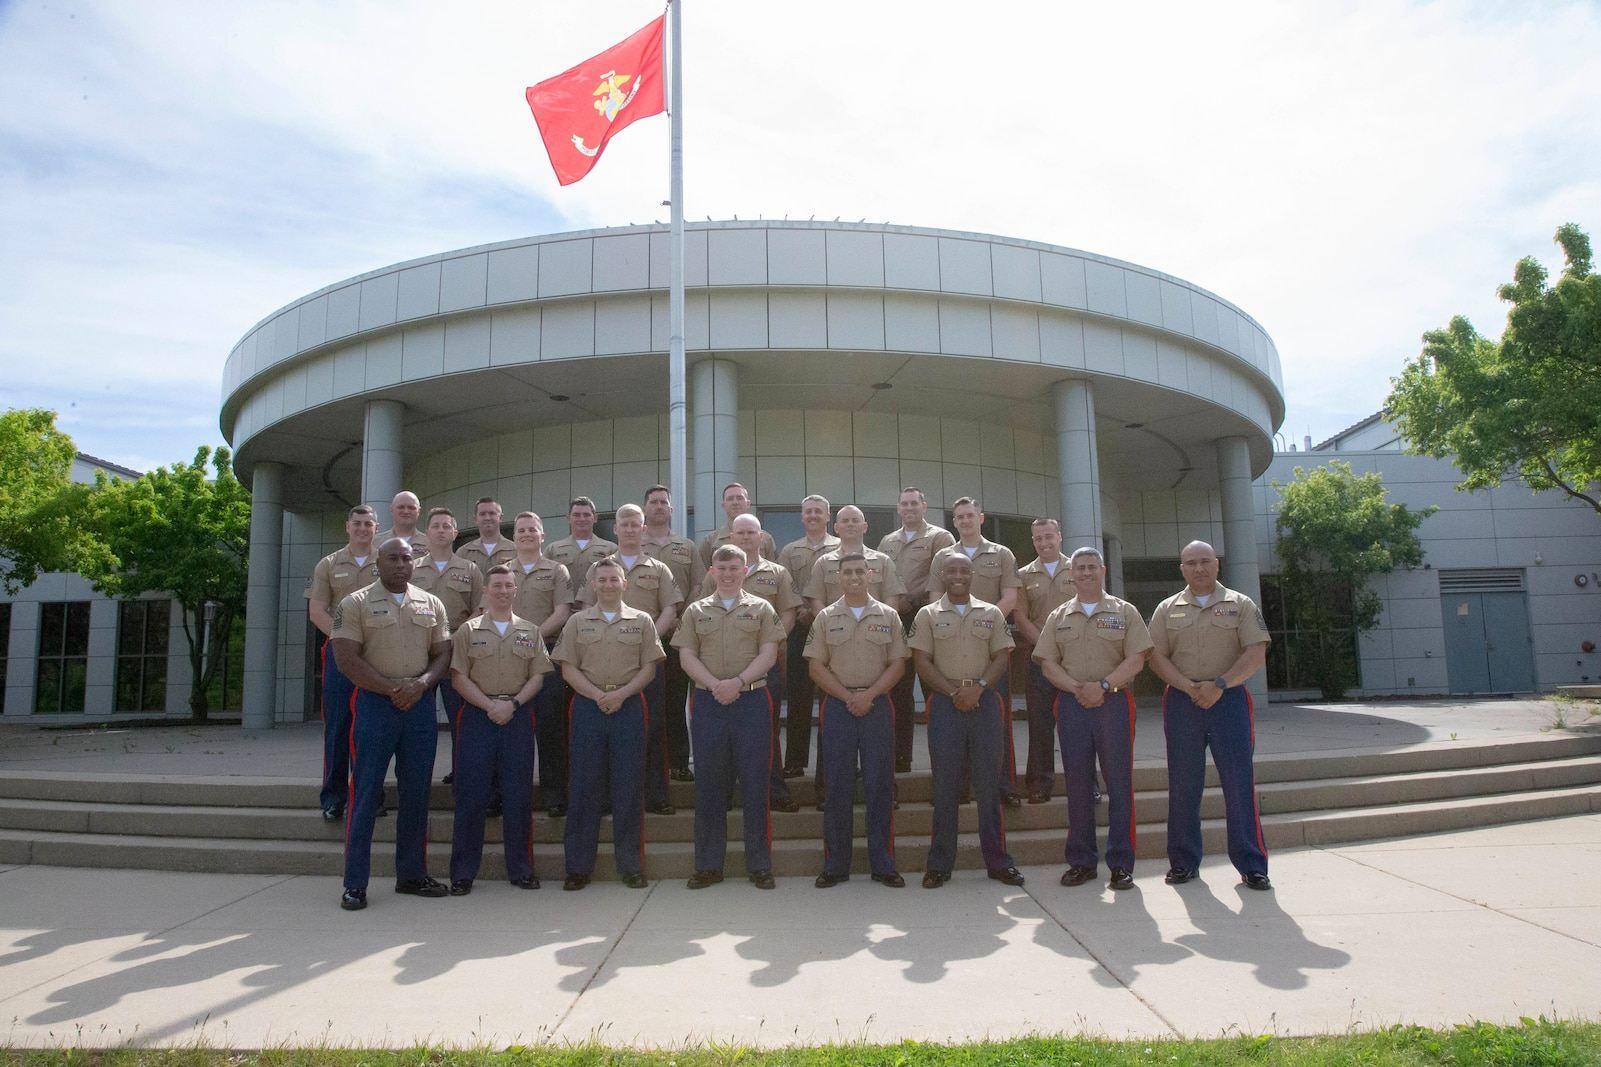 U.S. Marines from 9th Marine Corps District pose for a photo after graduating from the Staff Non-Commissioned Officer in Charge course 3-21 on Naval Station Great Lakes, Ill., May 21, 2021. The course teaches the Marines how to properly lead their respective recruiting sub-stations. (U.S. Marine Corps illustration by Cpl. Baylee Boggs)